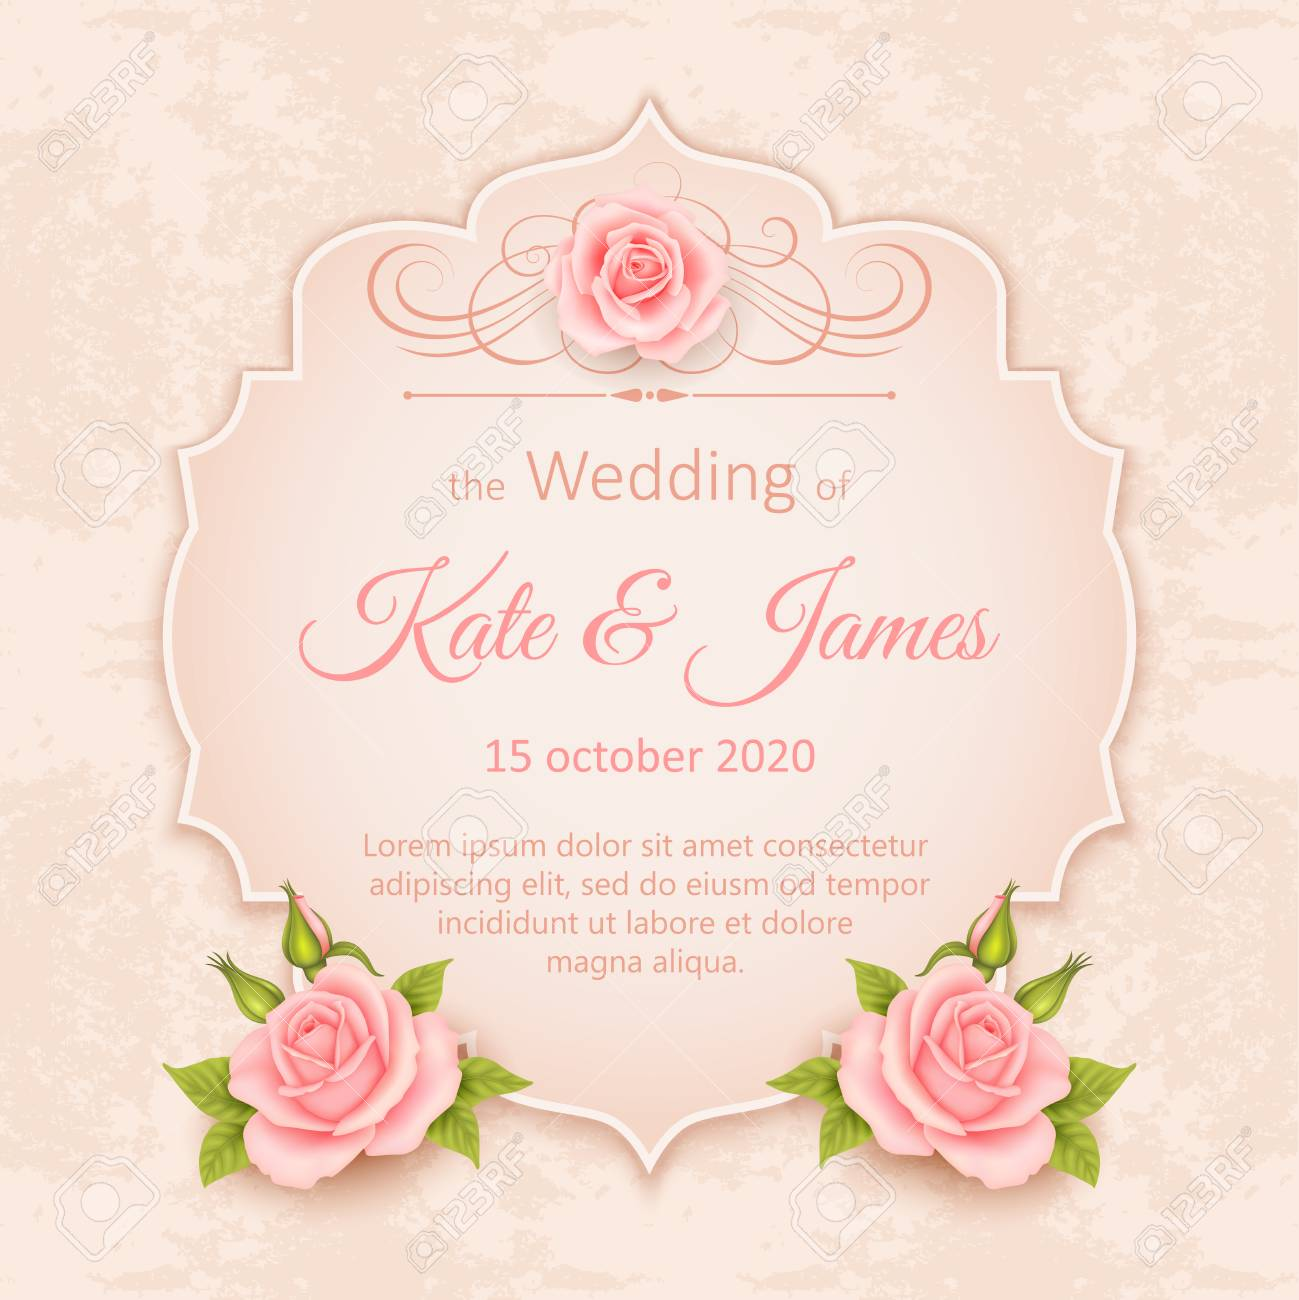 beautiful design of wedding invitation with roses vintage background royalty free cliparts vectors and stock illustration image 87271452 beautiful design of wedding invitation with roses vintage background